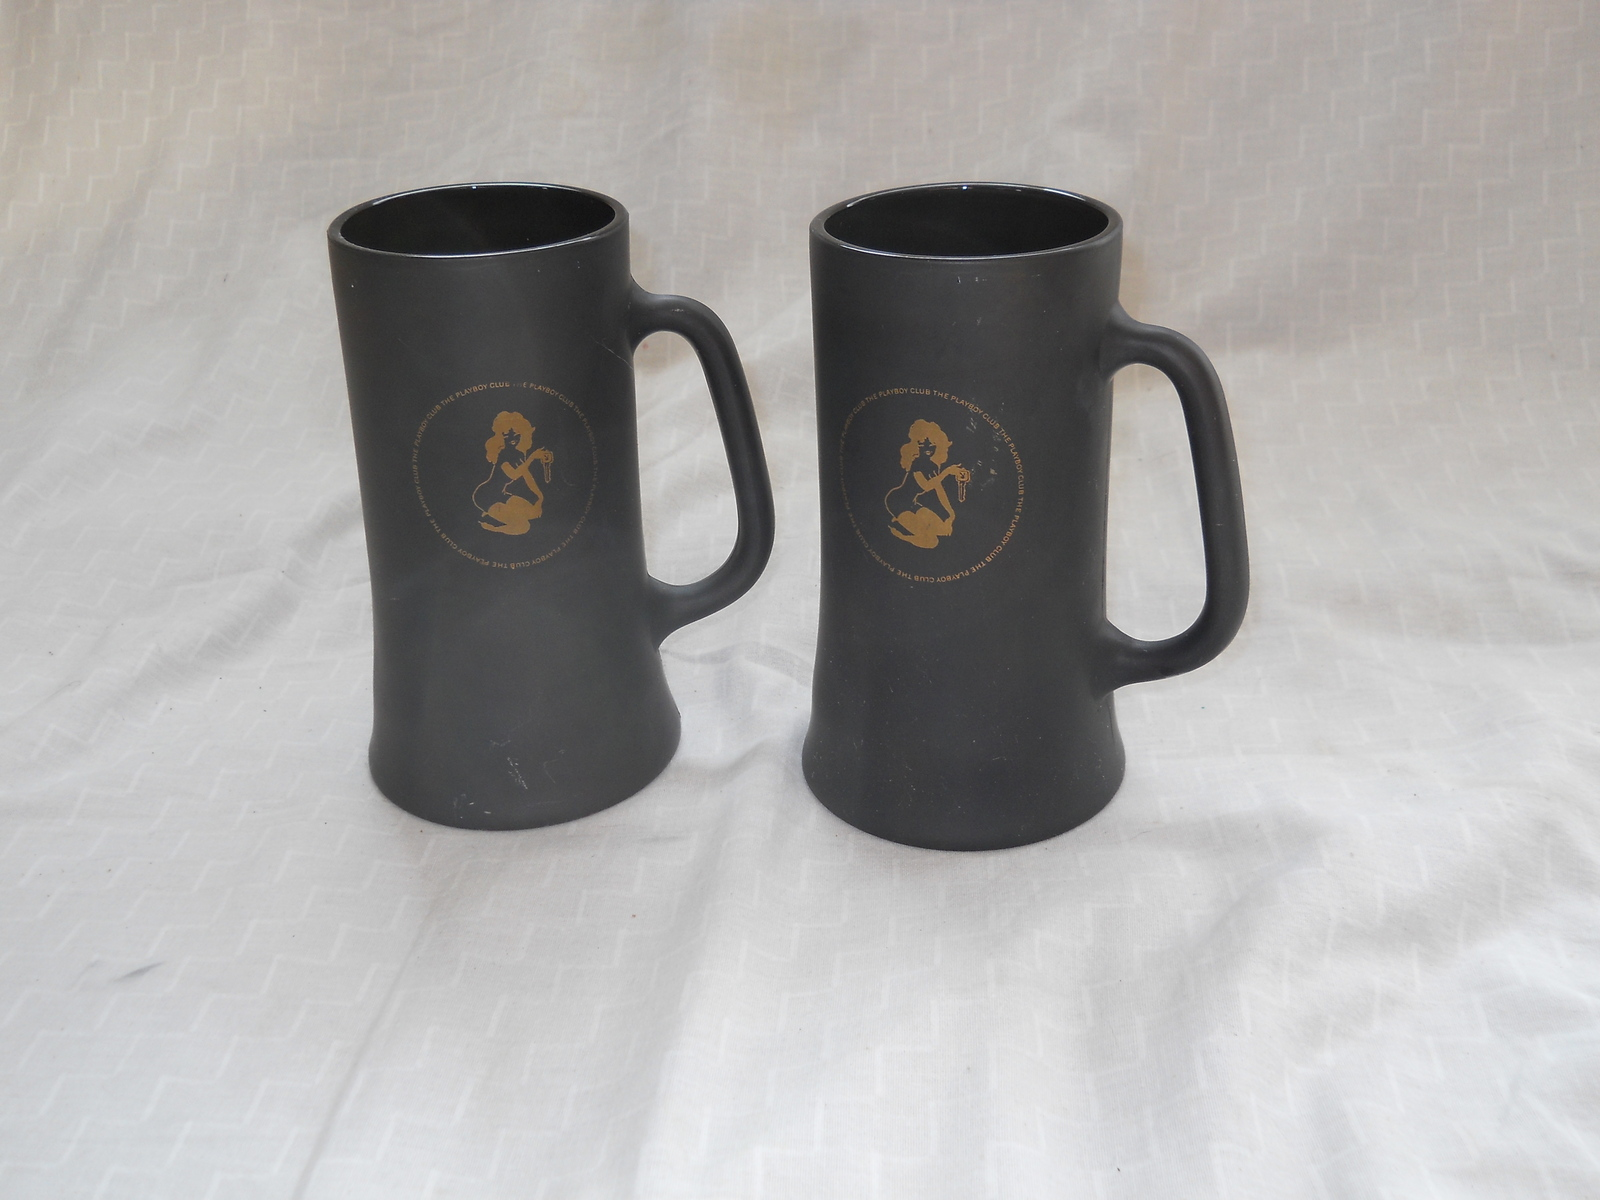 TWO PLAYBOY CLUB BLACK & GOLD FROSTY GLASS COFFEE MUGS, BEER STEIN CUP VTG 60's